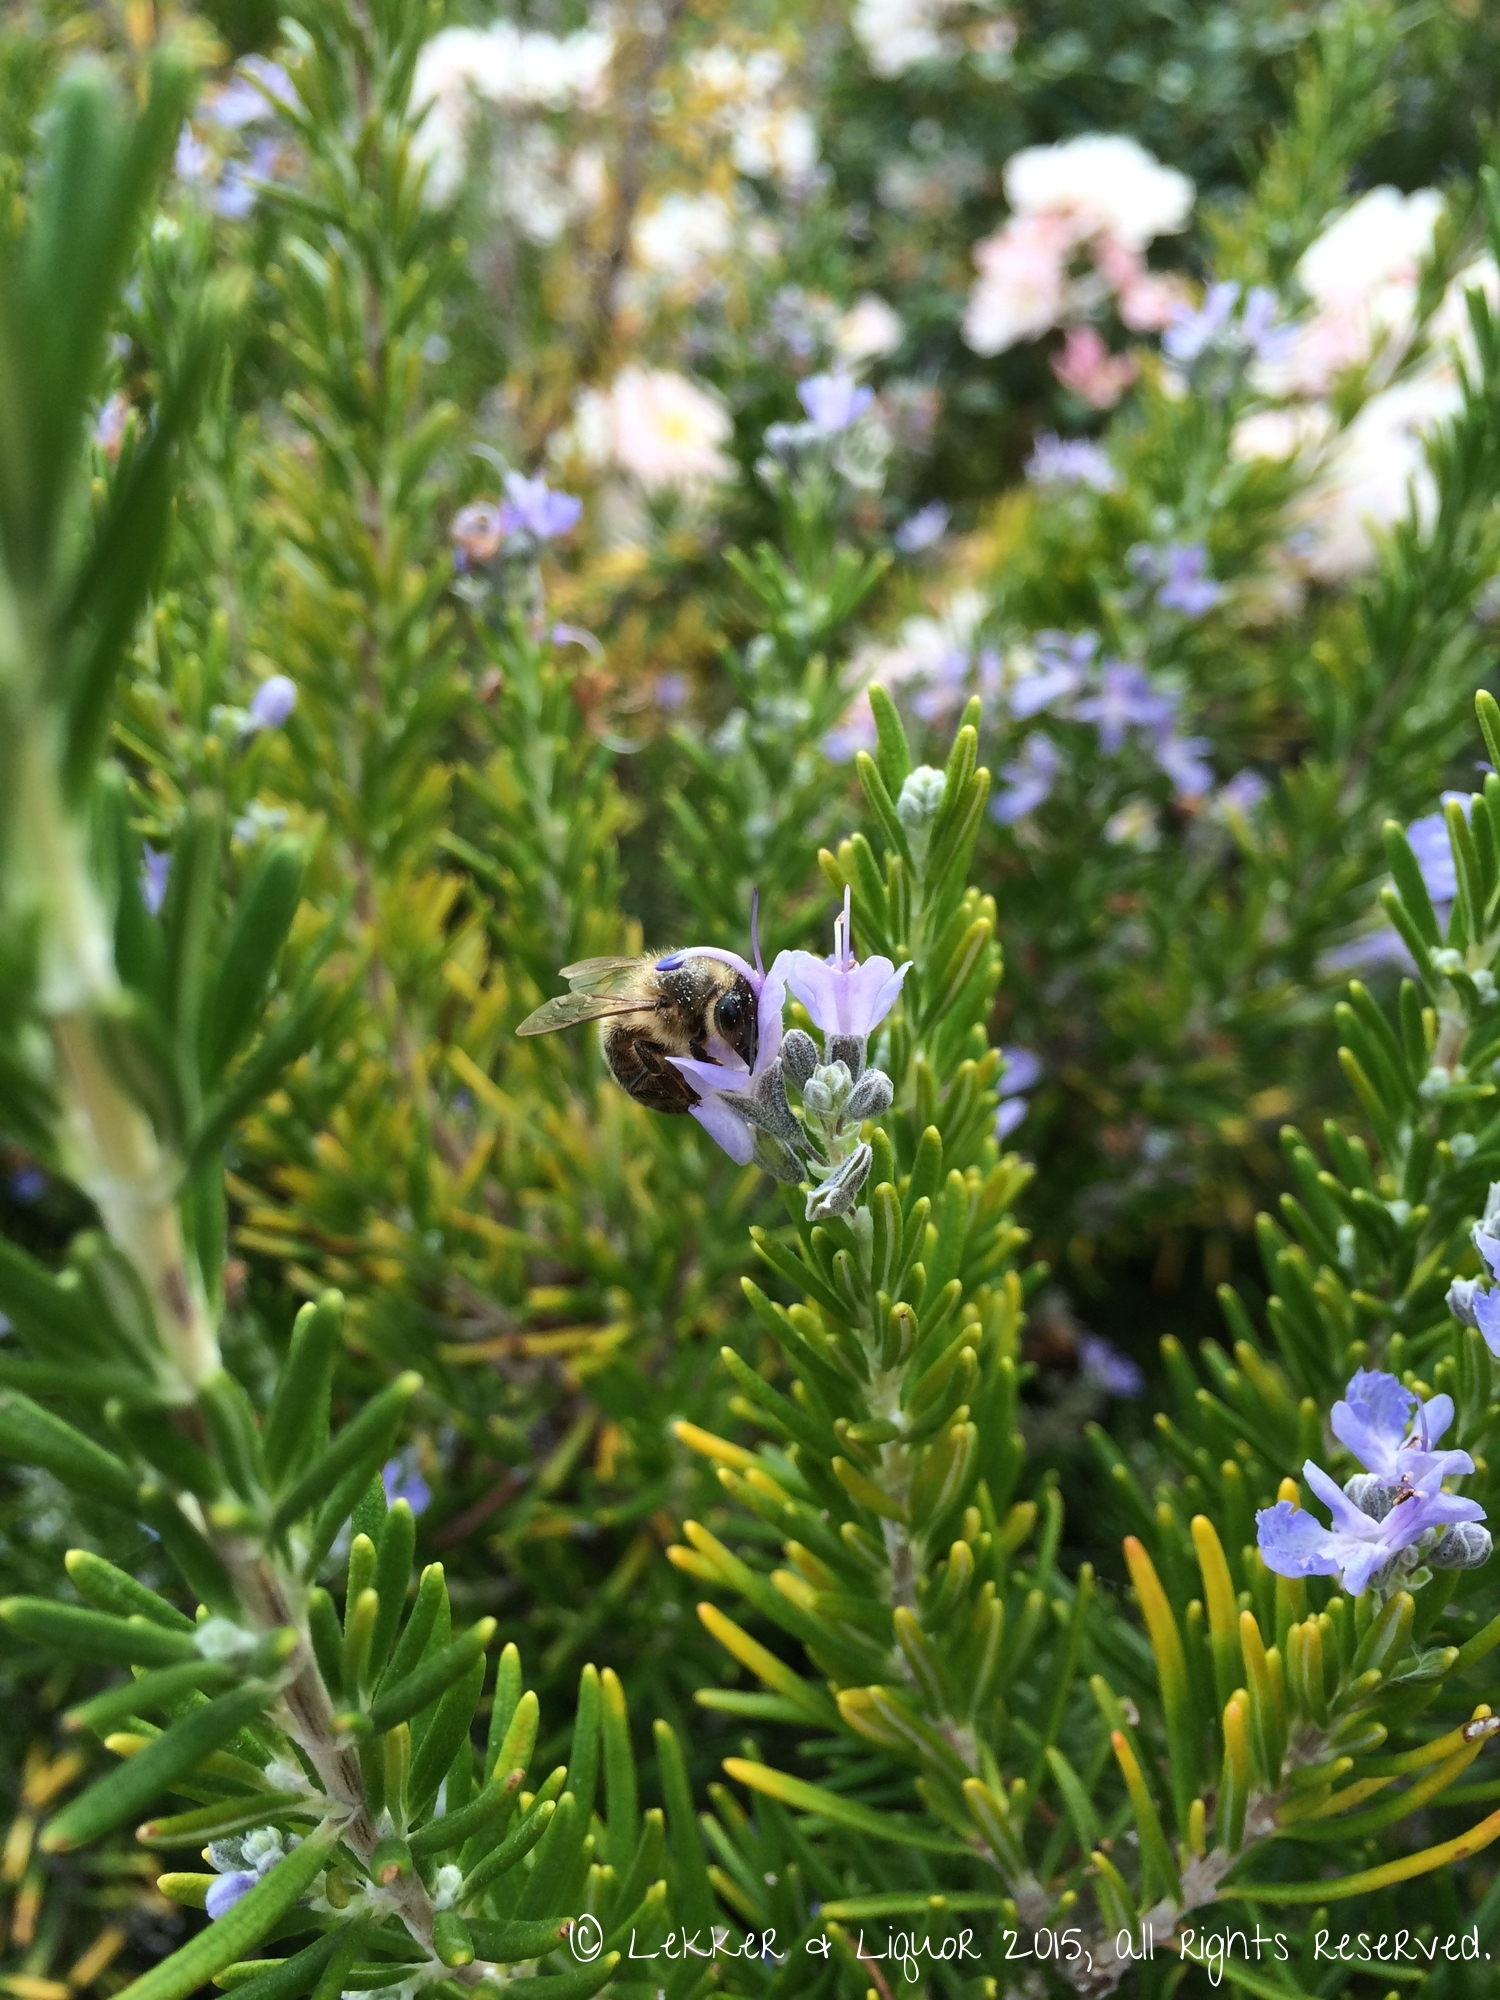 Rosemary left to bloom will attract visitors...